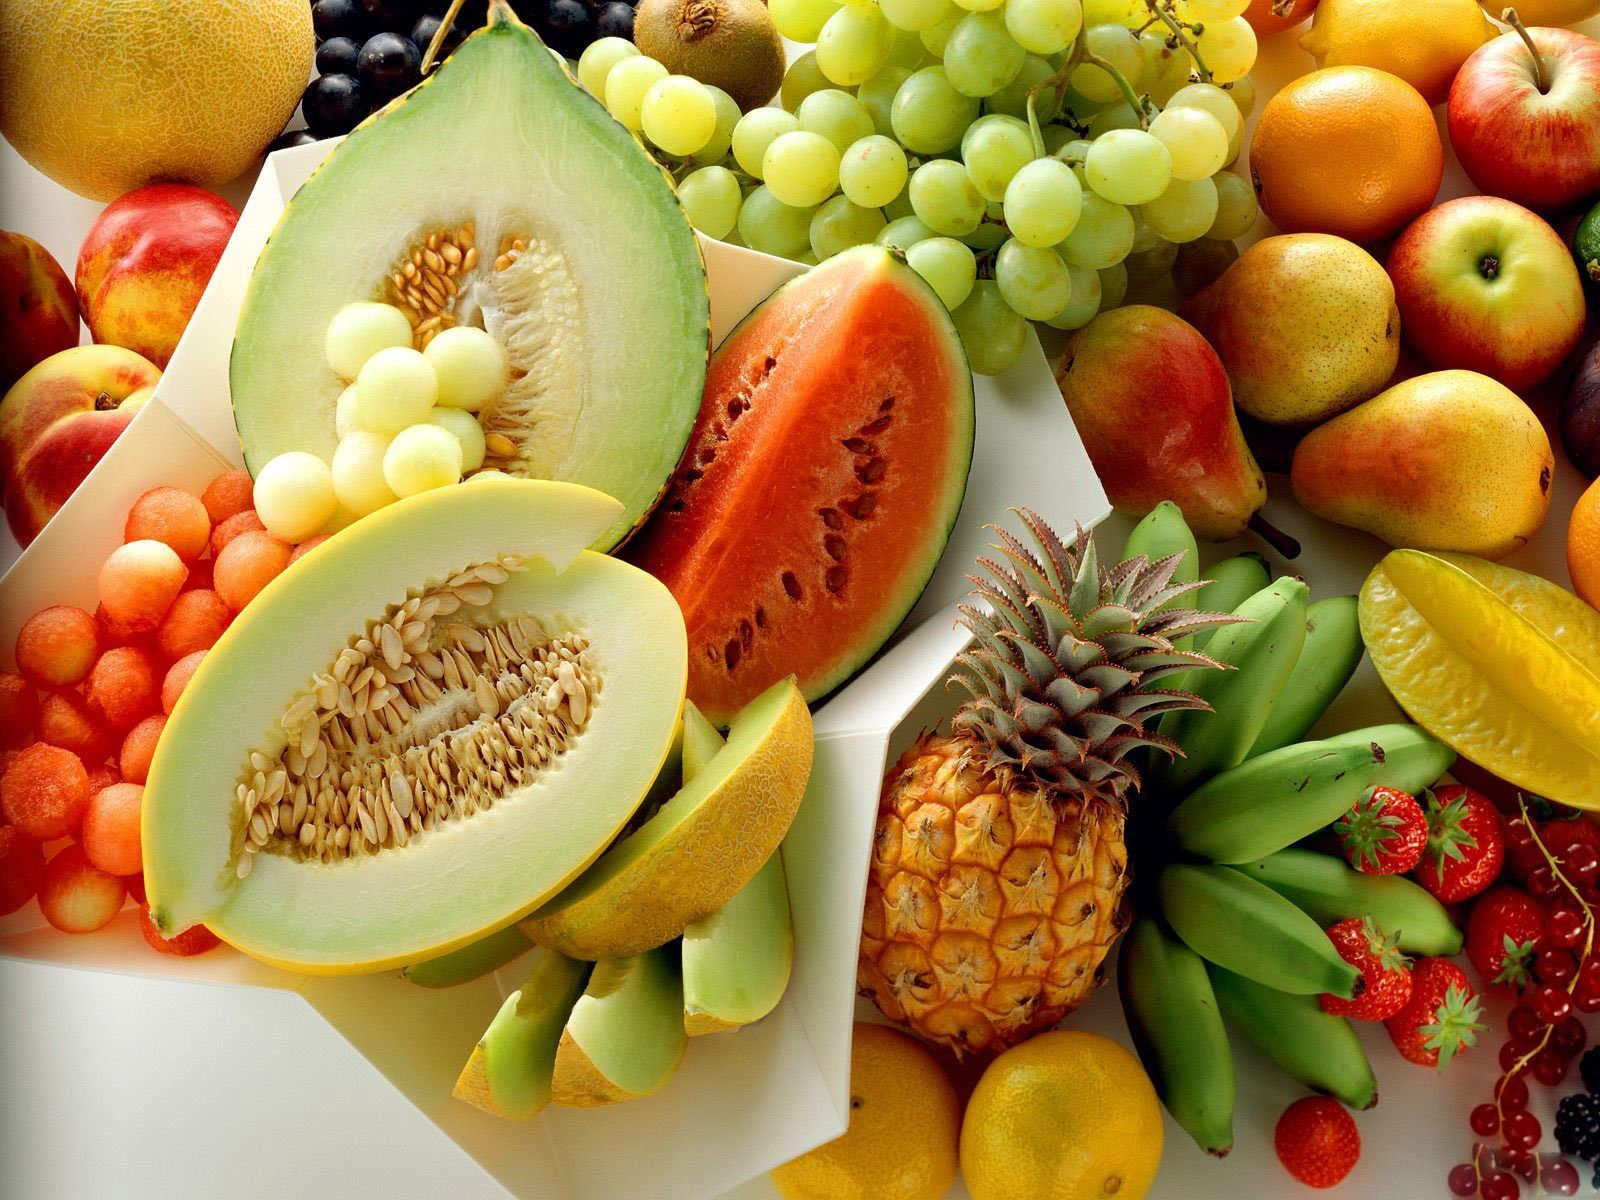 1600X1200 Px Fruit Wallpaper  Full Hd Wallpapers, Photos By